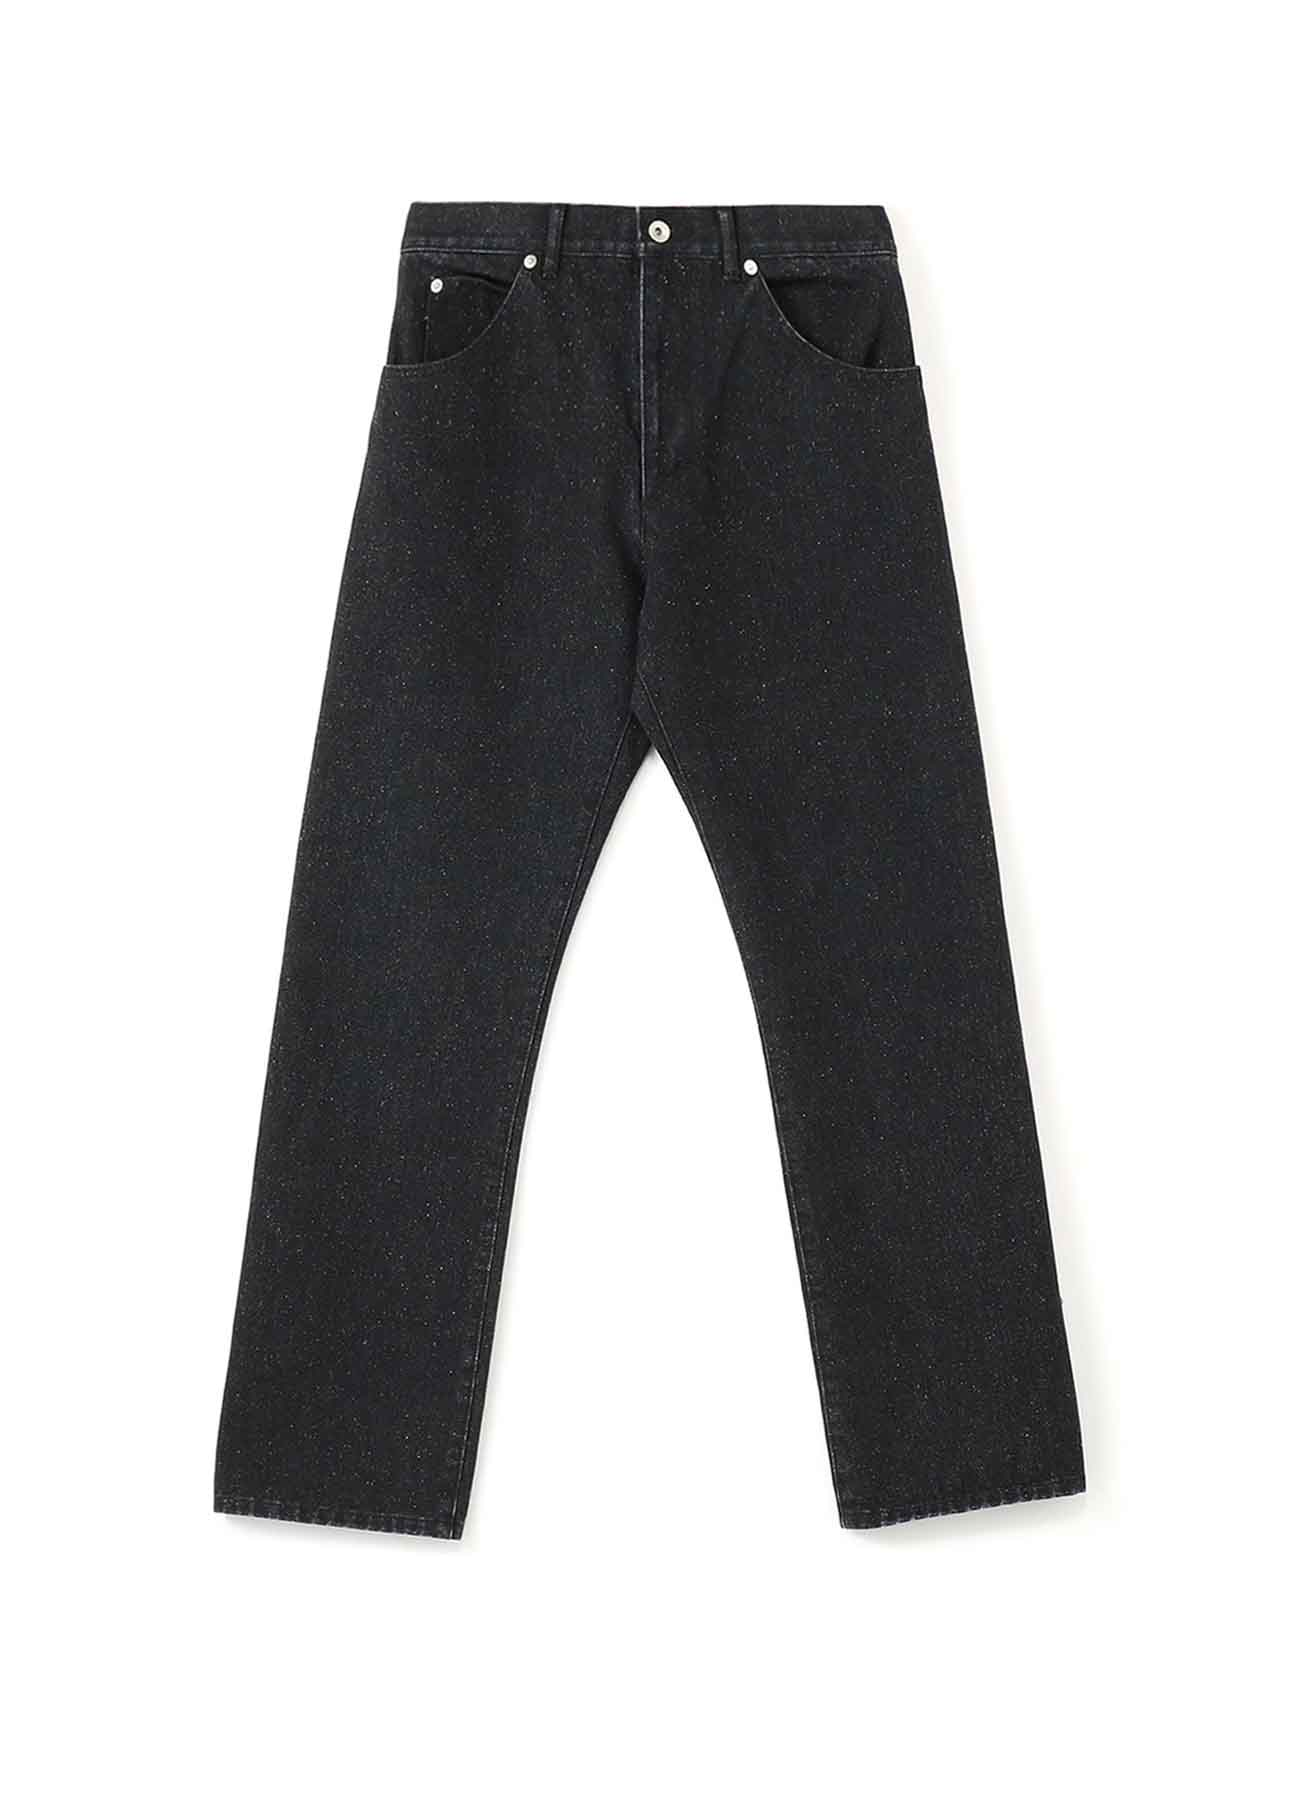 SELVAGE DENIM REGULAR PANTS